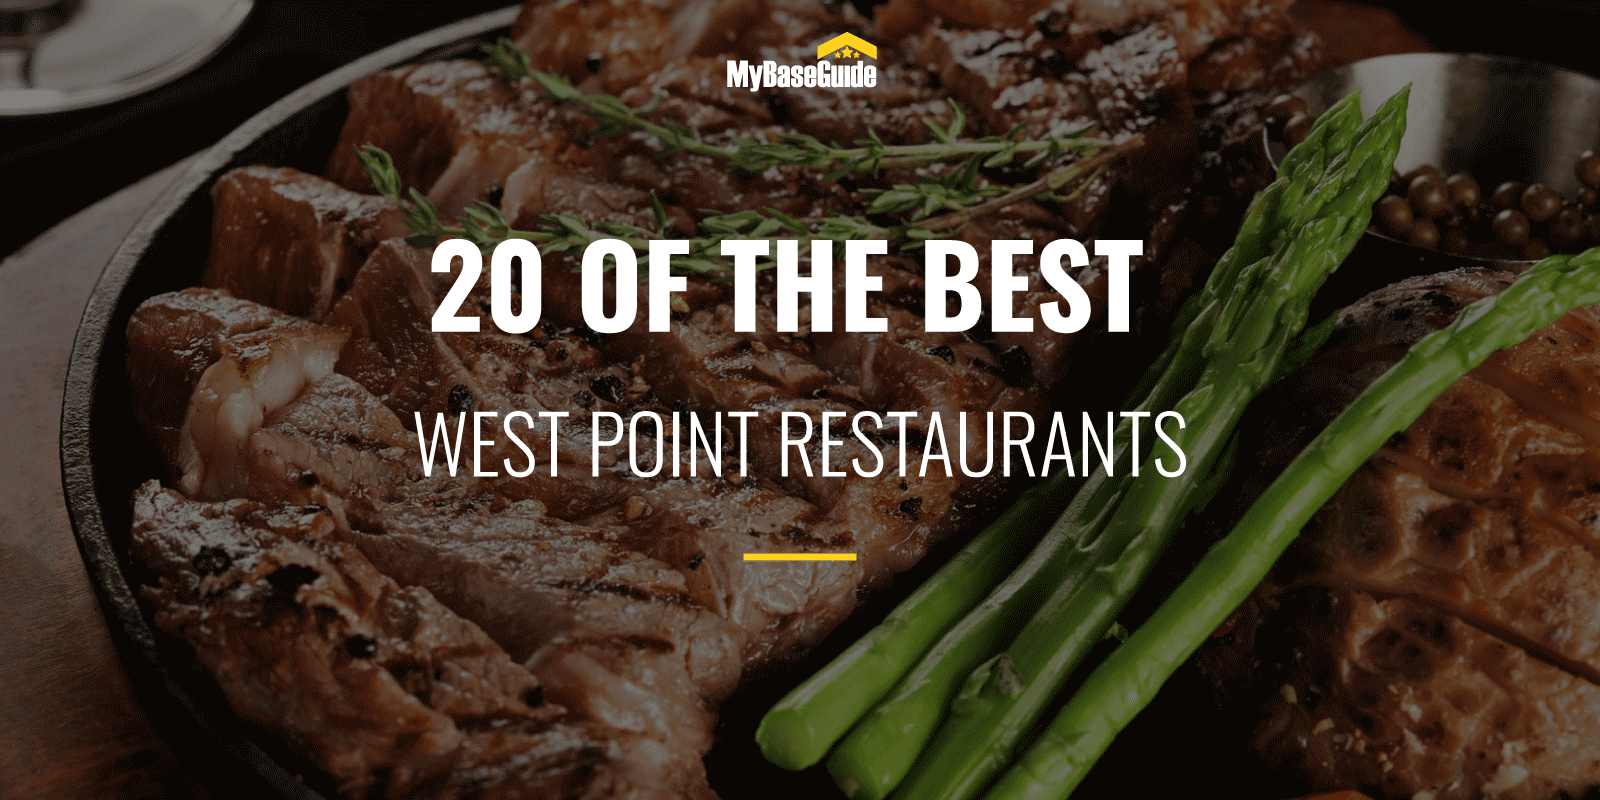 20 of the Best West Point Restaurants